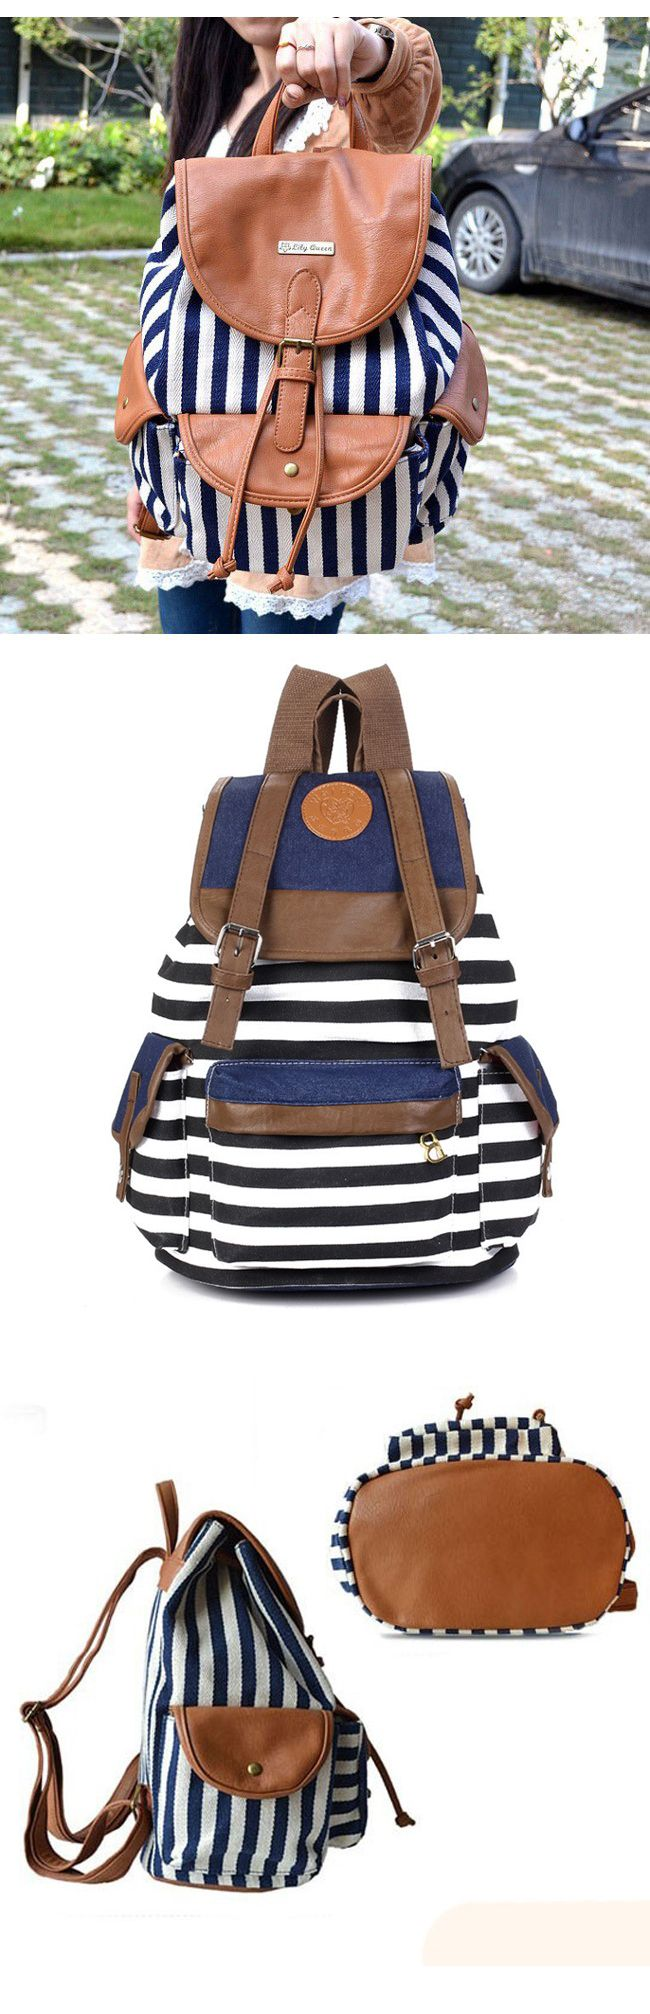 2017 Cute Style Stripe Splicing Leather Backpack for Girls,backpacks for girls, pink backpack, mini backpack, cool backpacks, backpacks for women, travel backpack